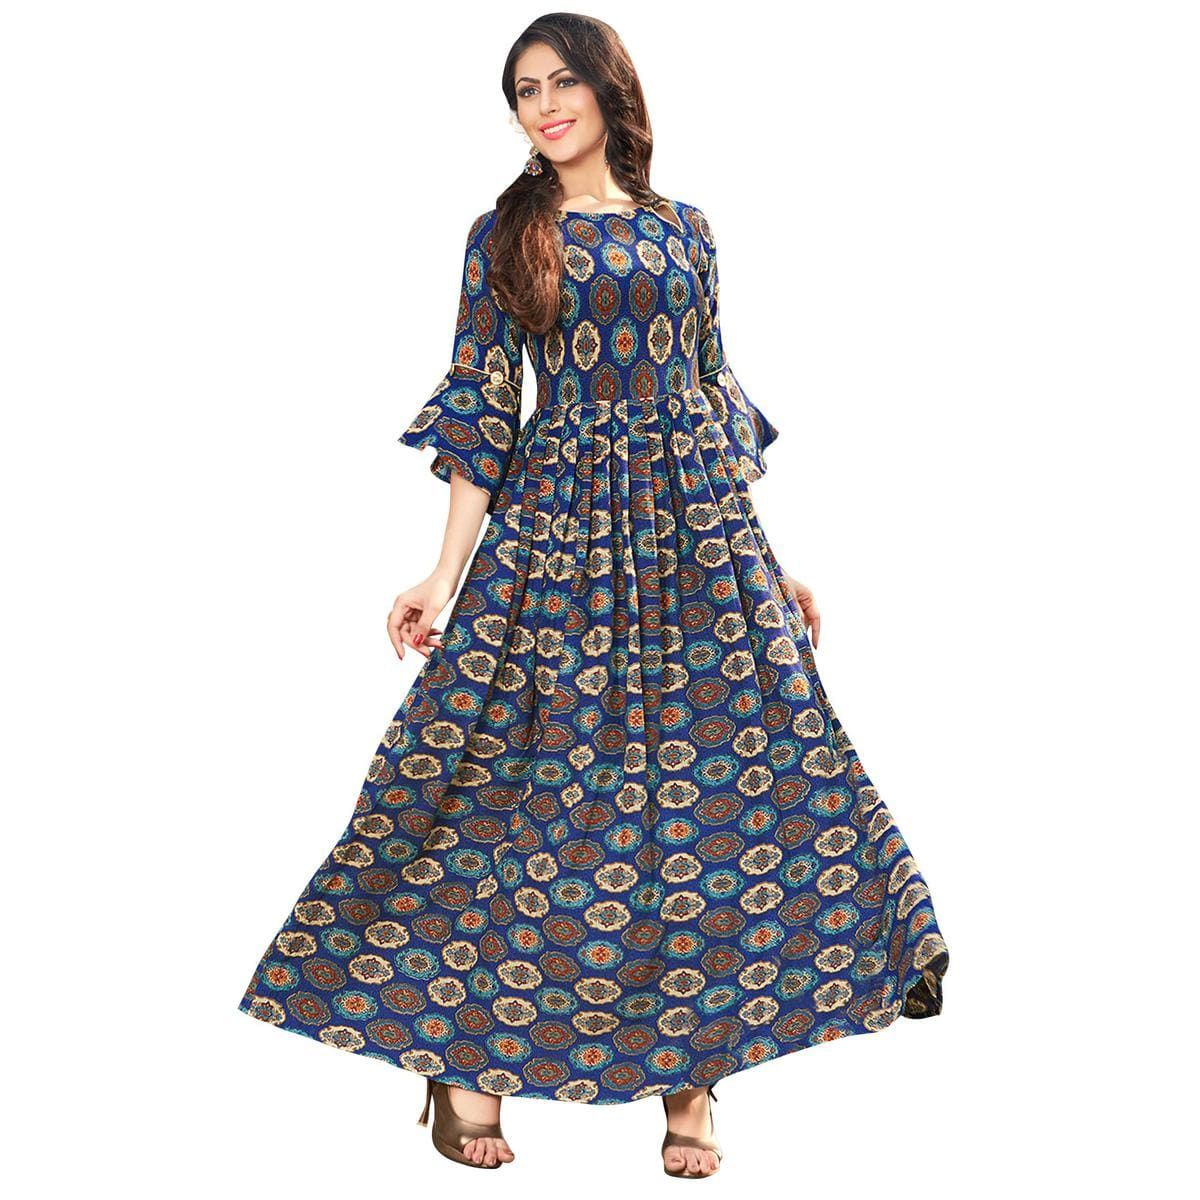 2da3f2acd9 Blooming Blue Colored Printed Partywear Rayon Cotton Long Kurti in ...